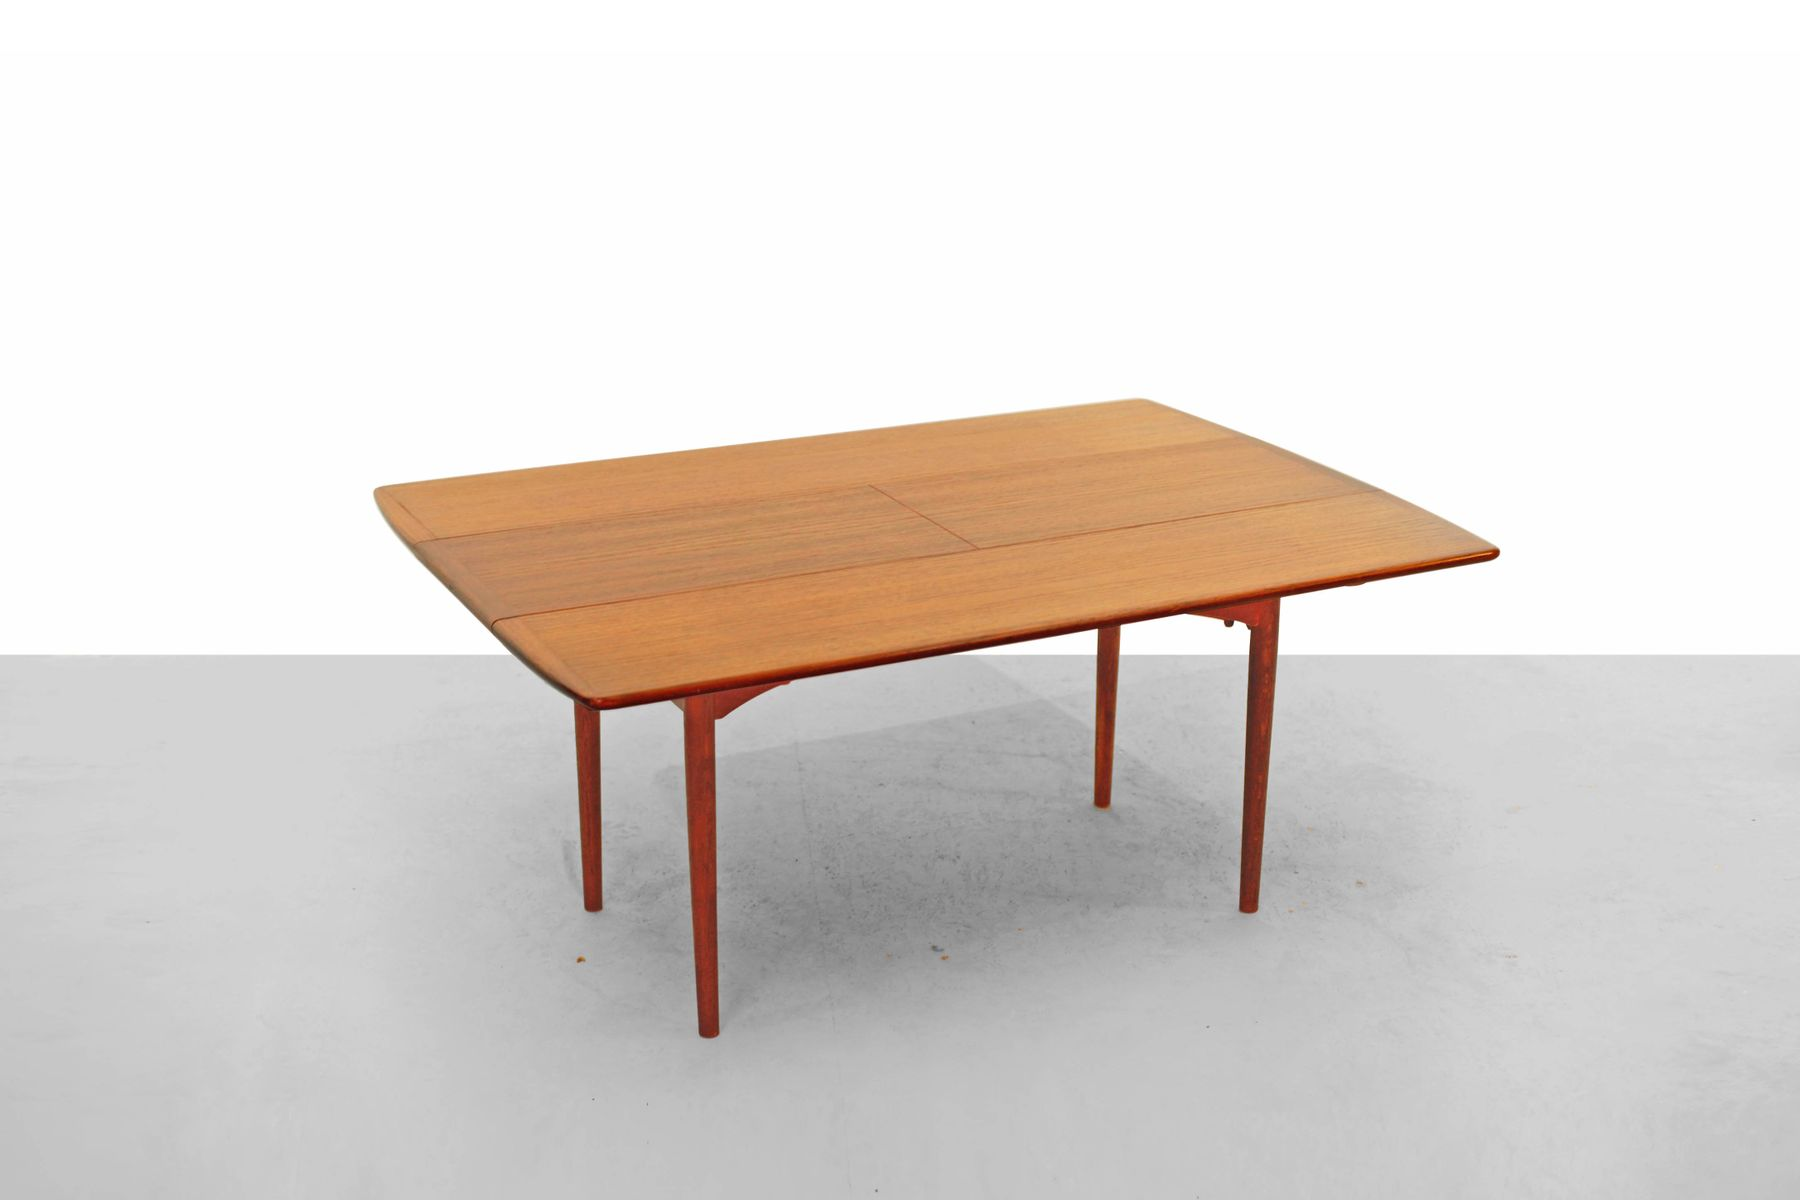 Teak coffee or dining table from haisch 1960s for sale at pamono Coffee table dining